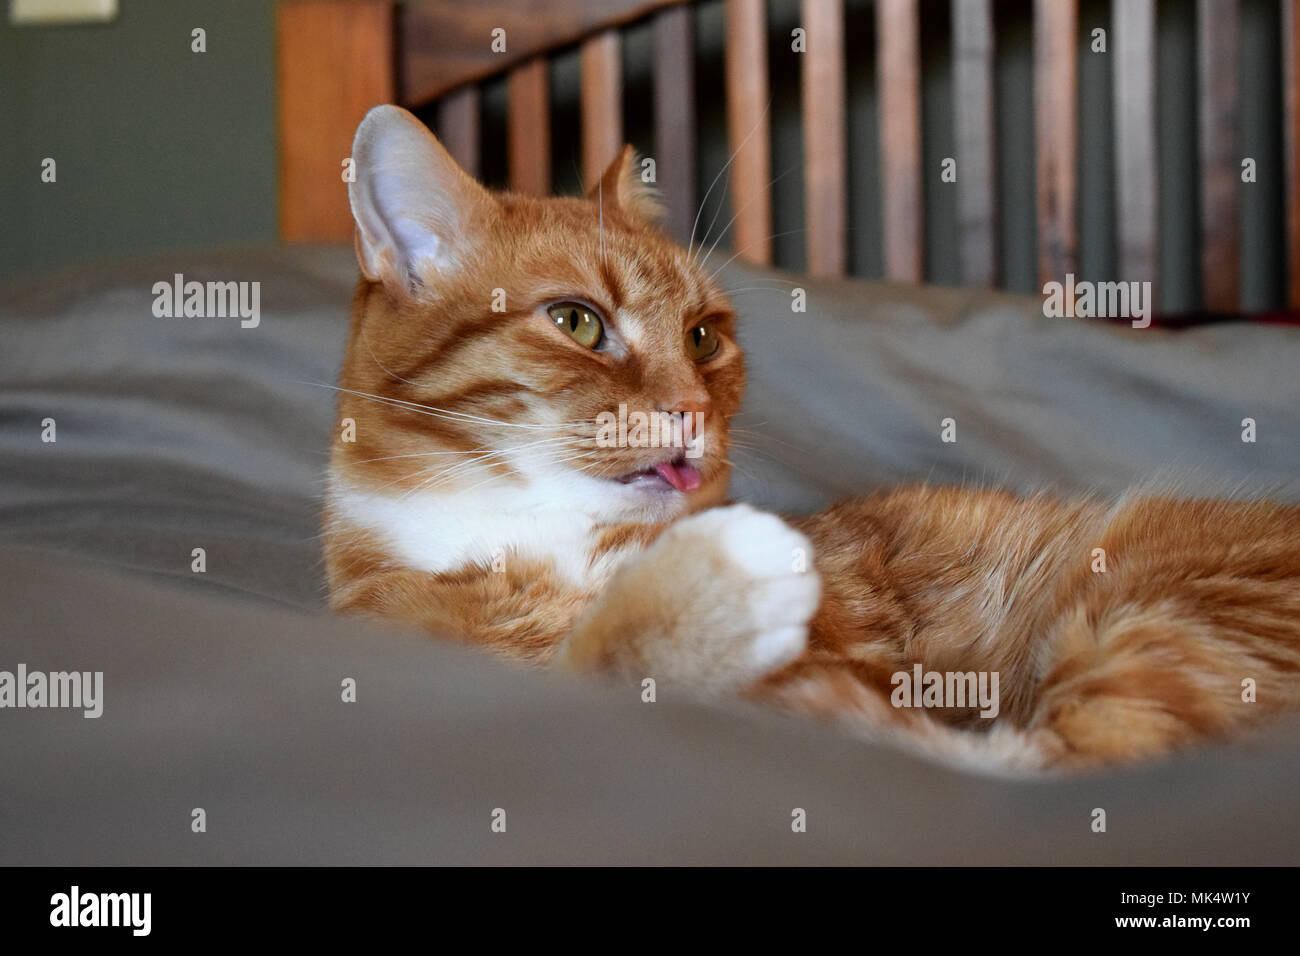 Cat licking - Stock Image